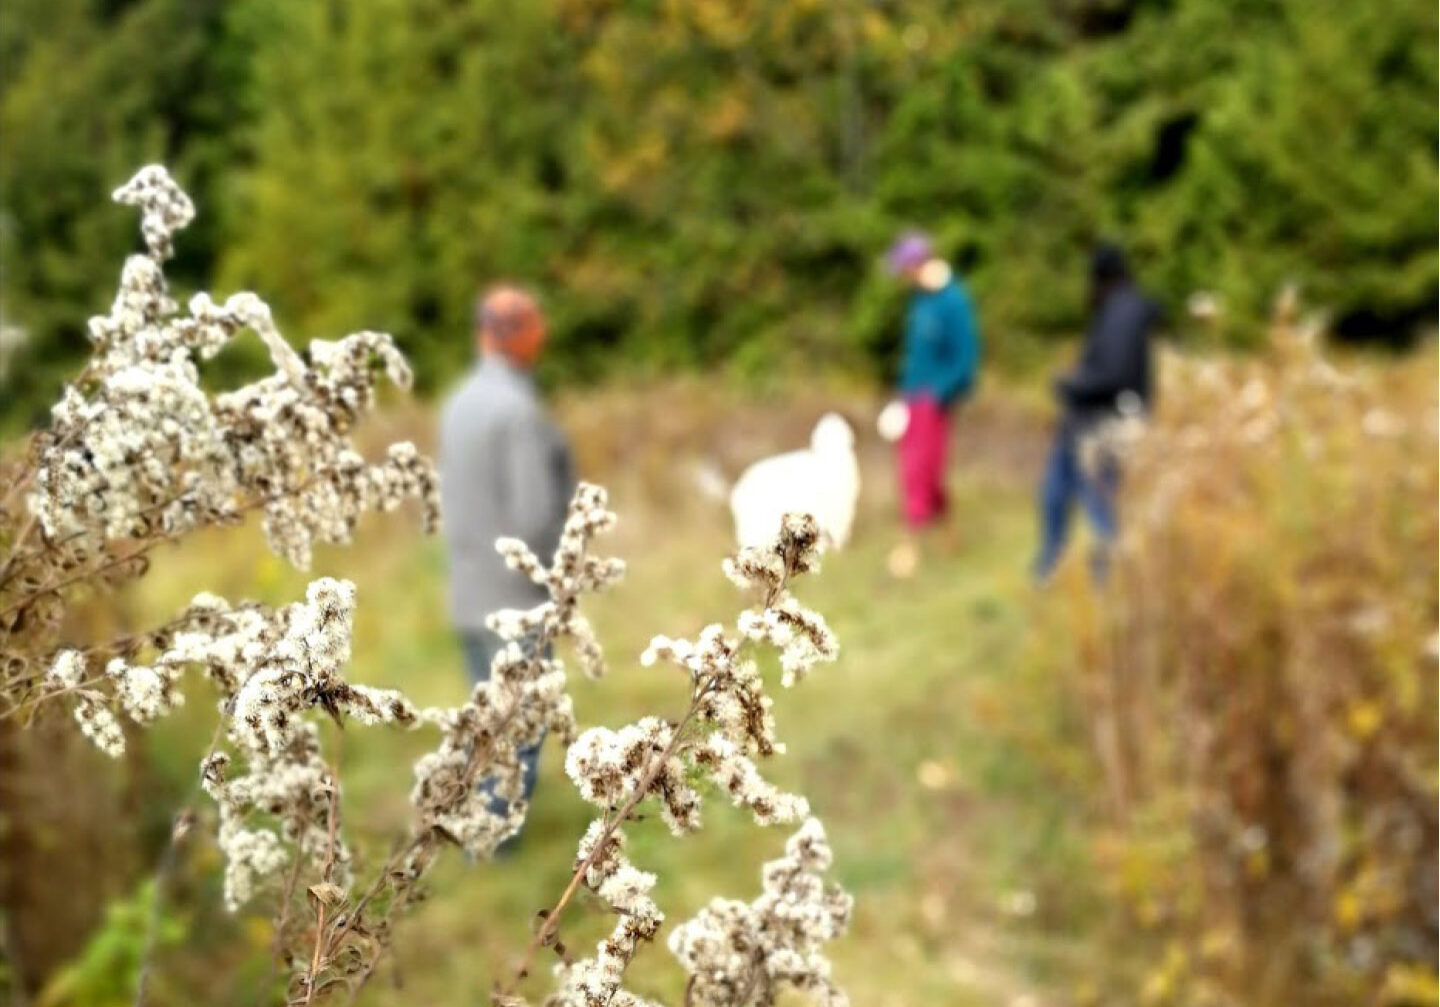 Visitors to Headwaters walk through a field near the forest